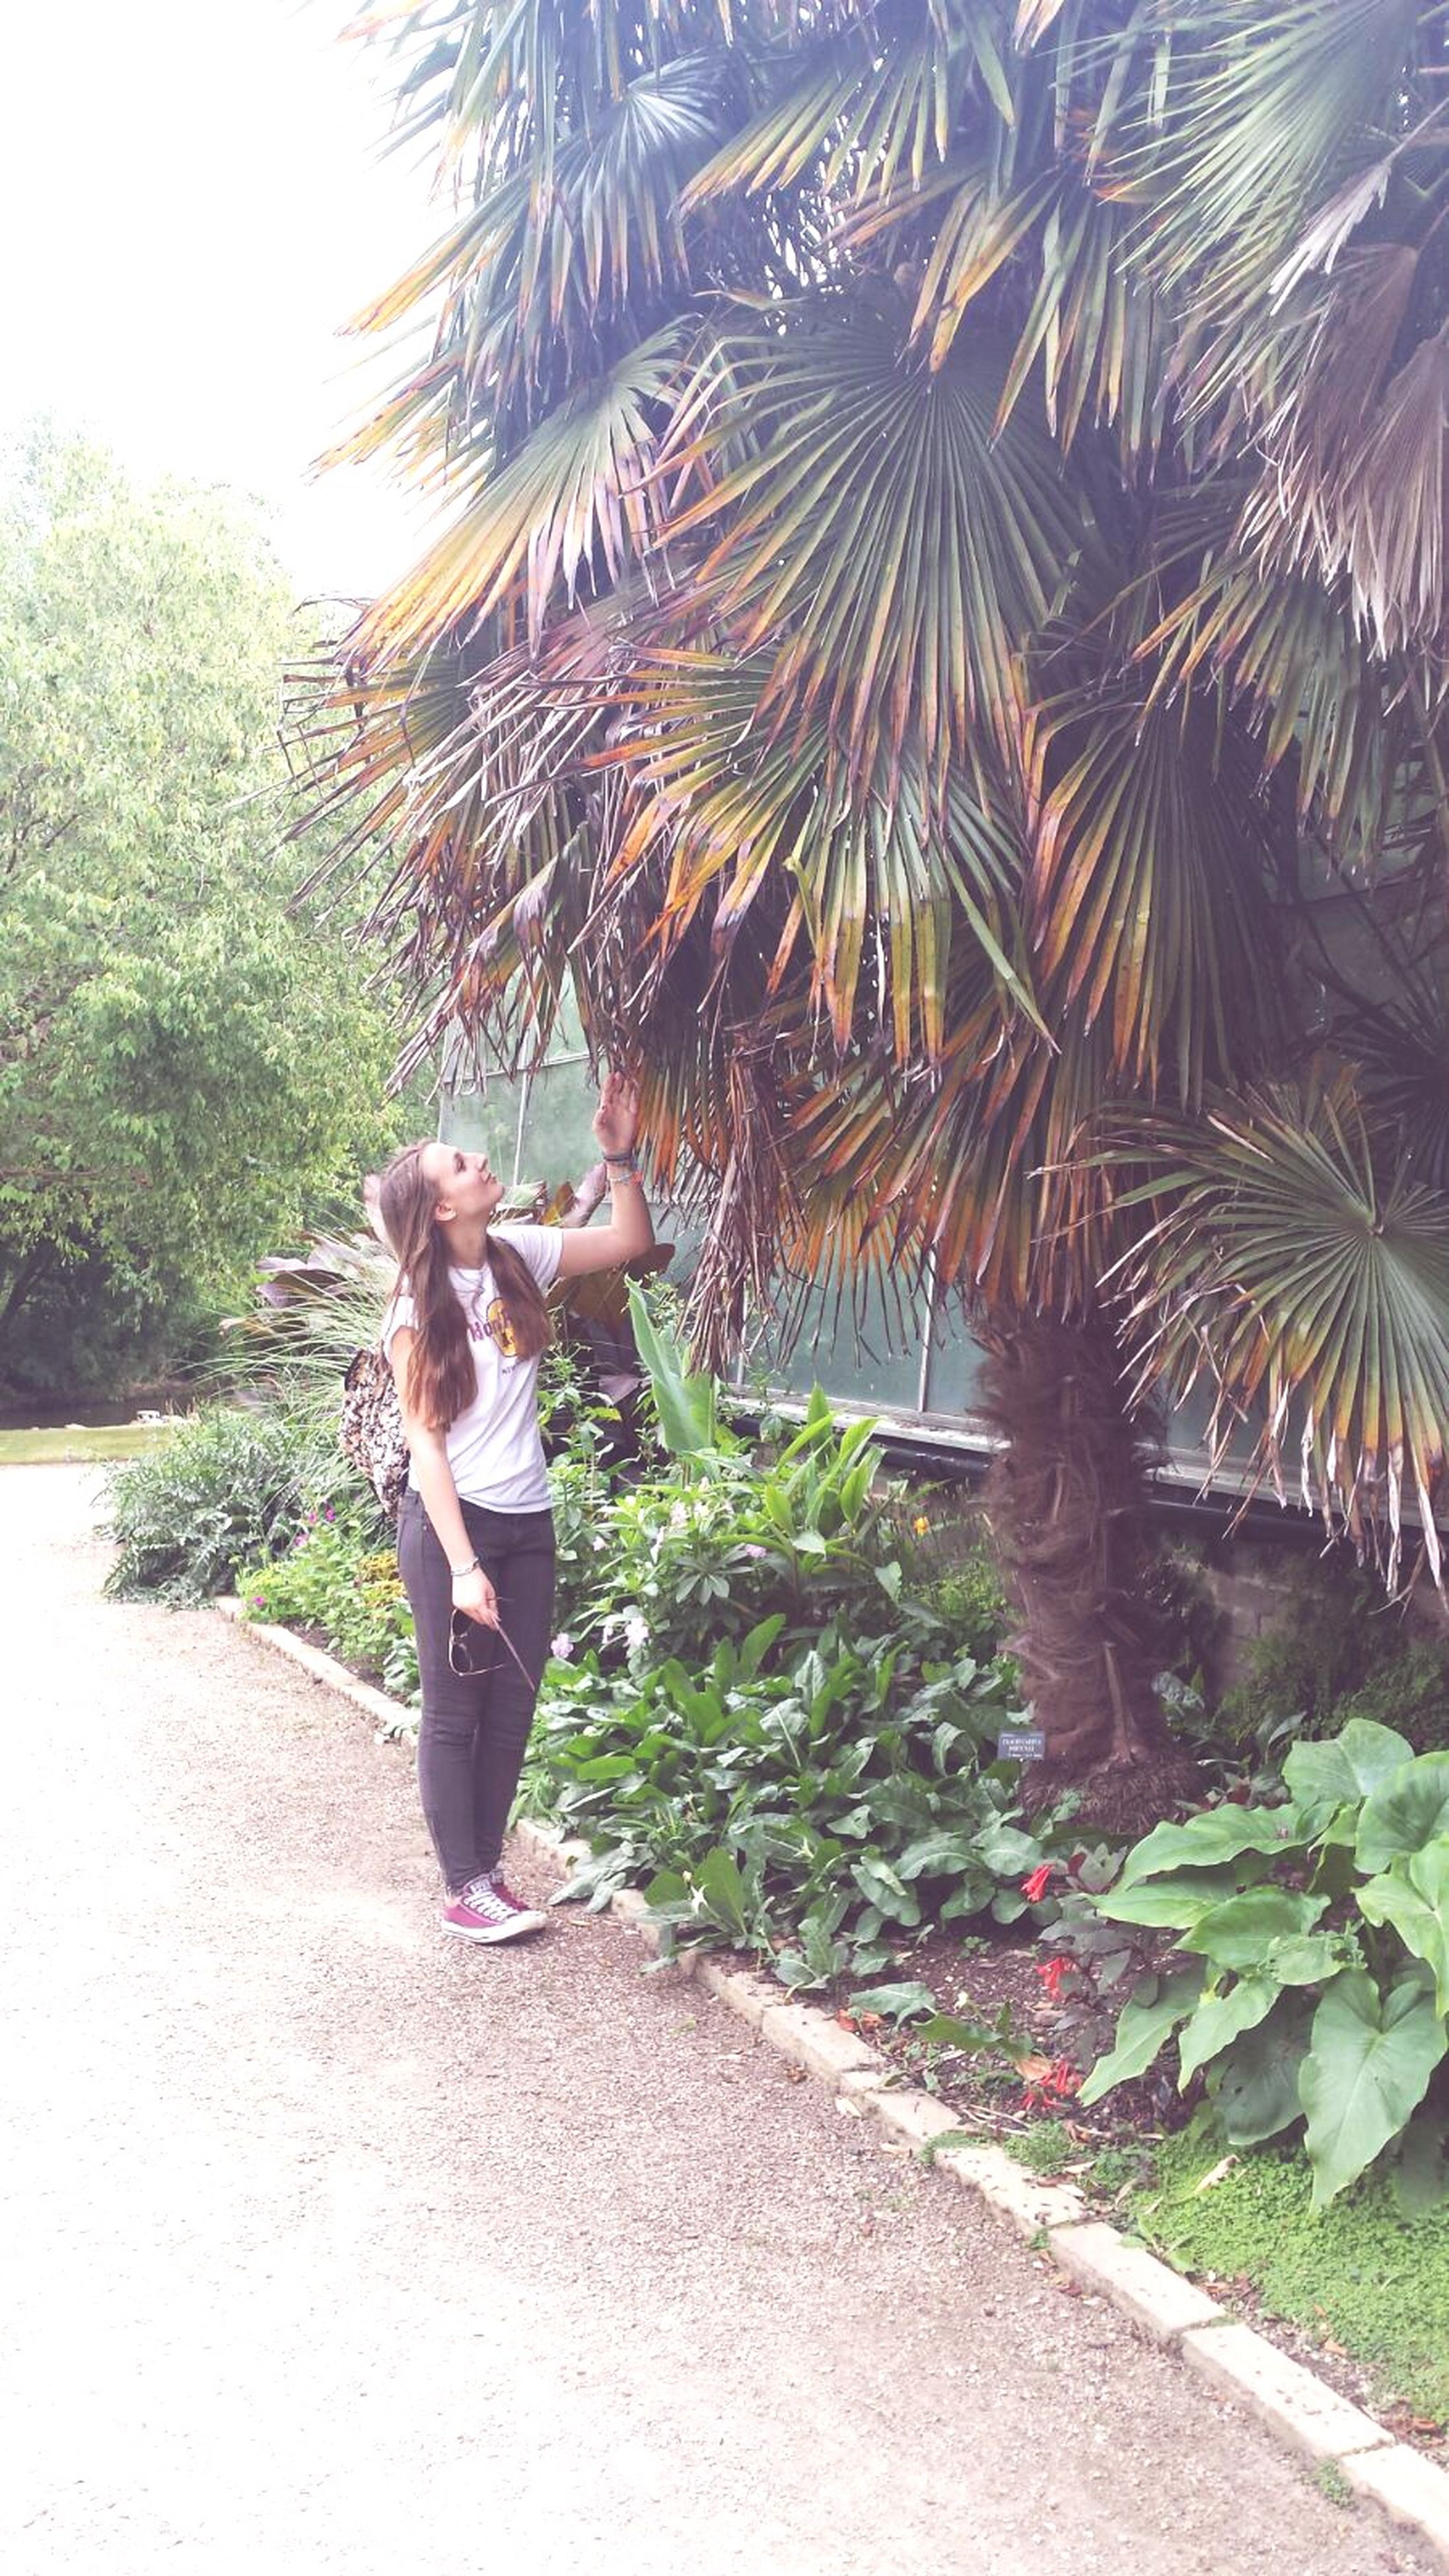 full length, lifestyles, tree, casual clothing, leisure activity, standing, plant, growth, rear view, walking, person, day, young adult, green color, palm tree, nature, sunlight, young women